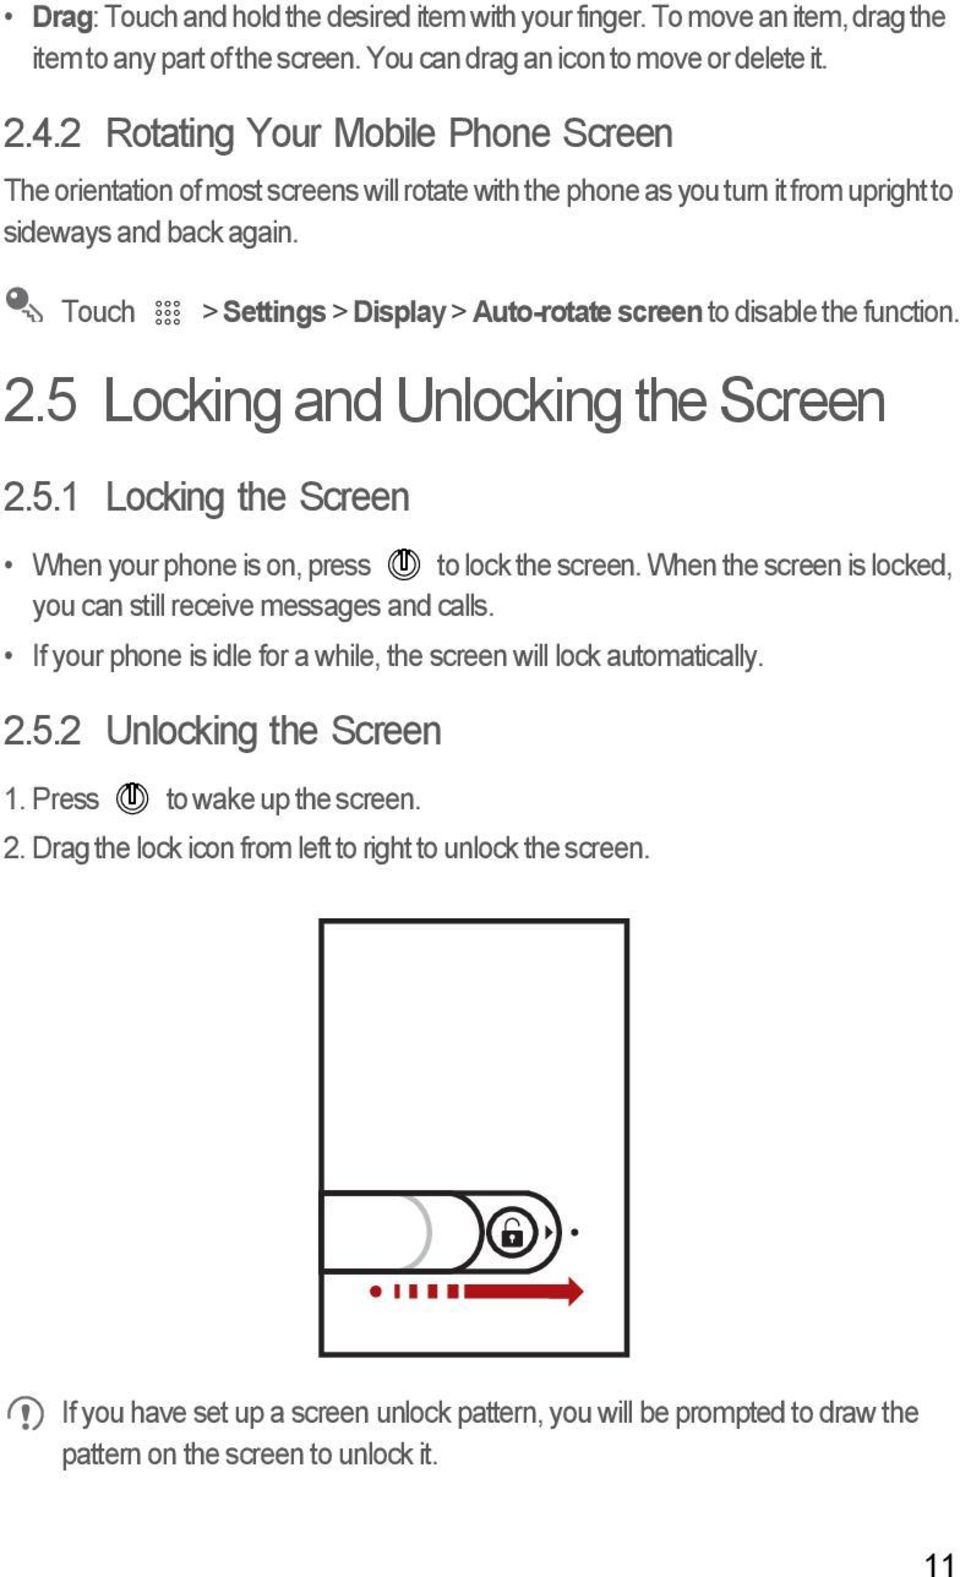 Touch > Settings > Display > Auto-rotate screen to disable the function. 2.5 Locking and Unlocking the Screen 2.5.1 Locking the Screen When your phone is on, press to lock the screen.